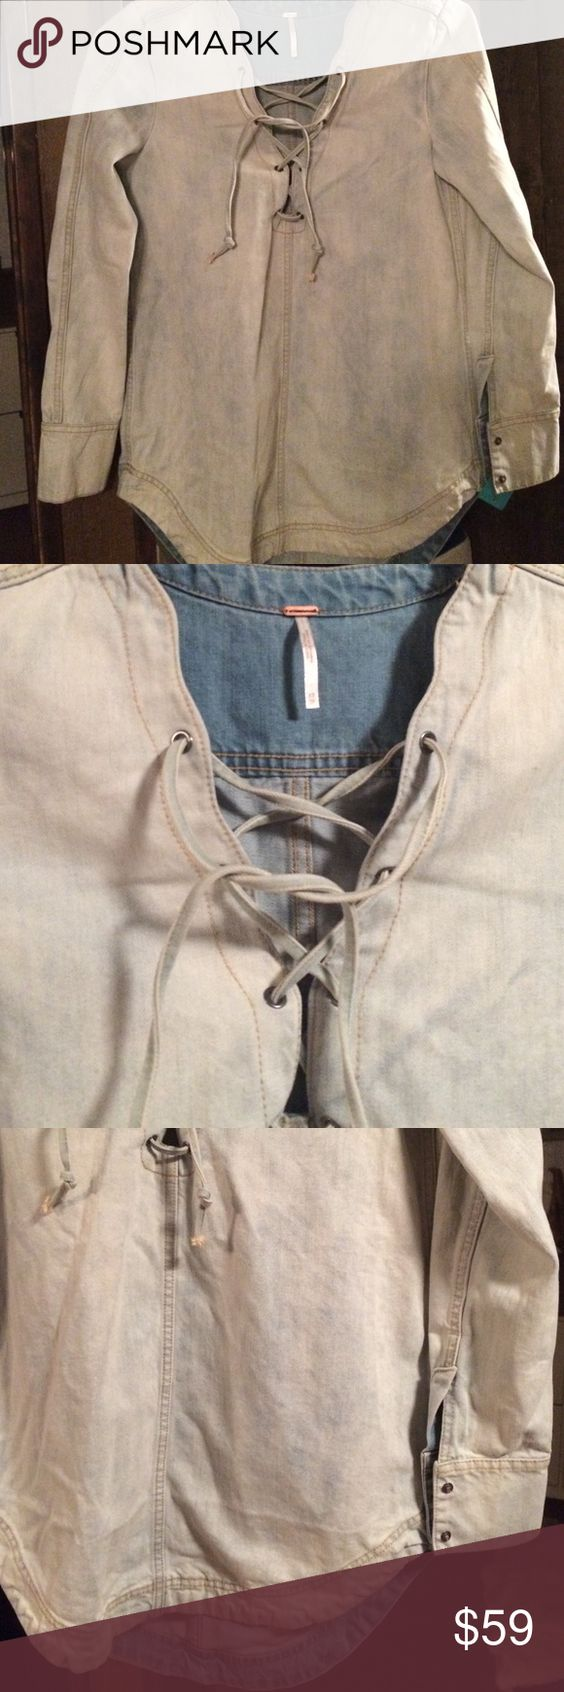 Free People jean lace up tunic SZ XS  NWOT Light jean colored tunic  criss cross ties up front two buttoned cuffs. Scooped bottom sz  XS. New. No tag. By Free People Free People Tops